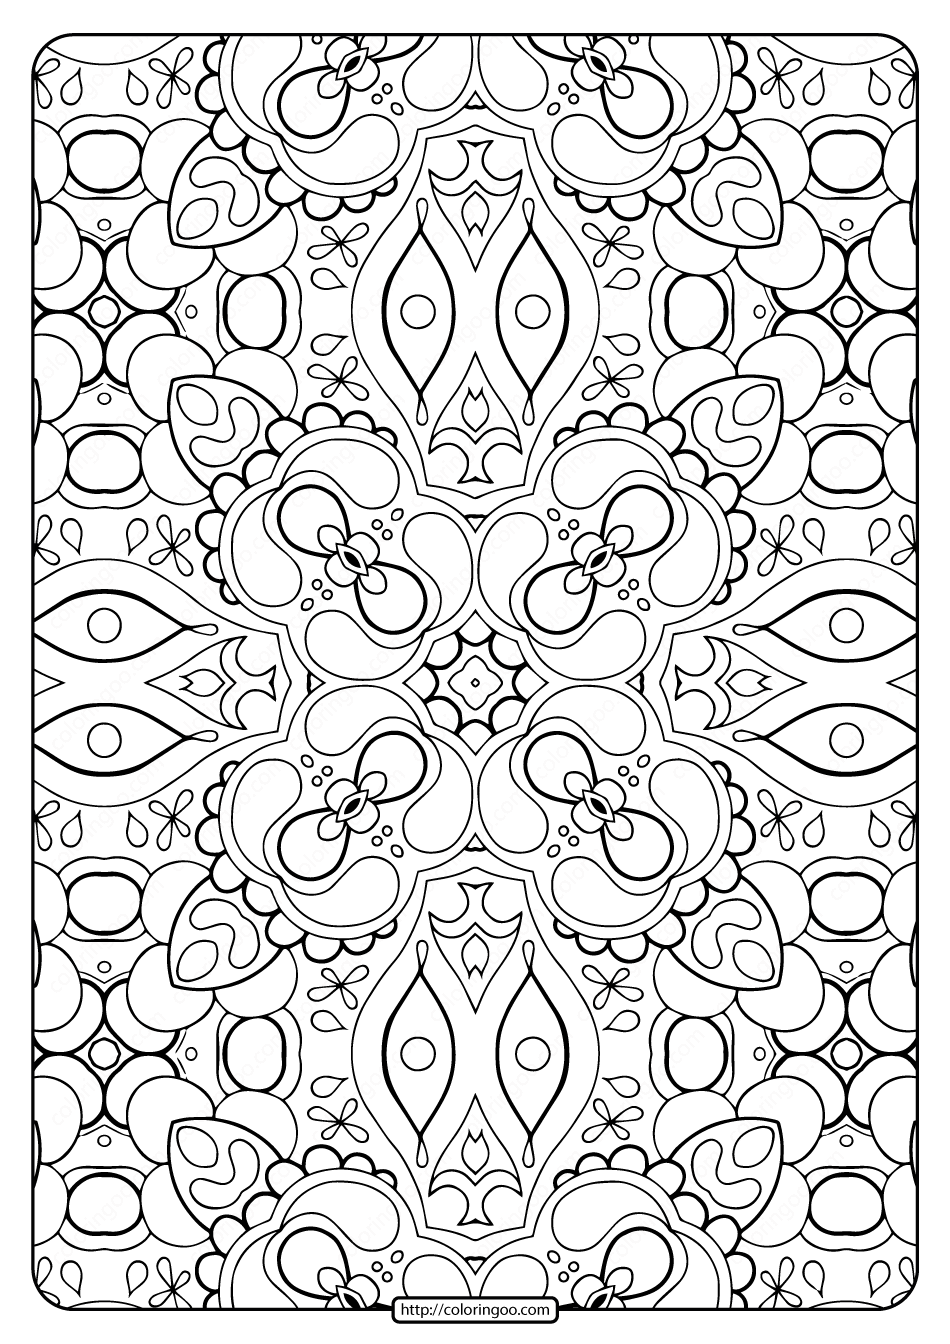 coloring pictures designs floral coloring pages for adults best coloring pages for designs pictures coloring